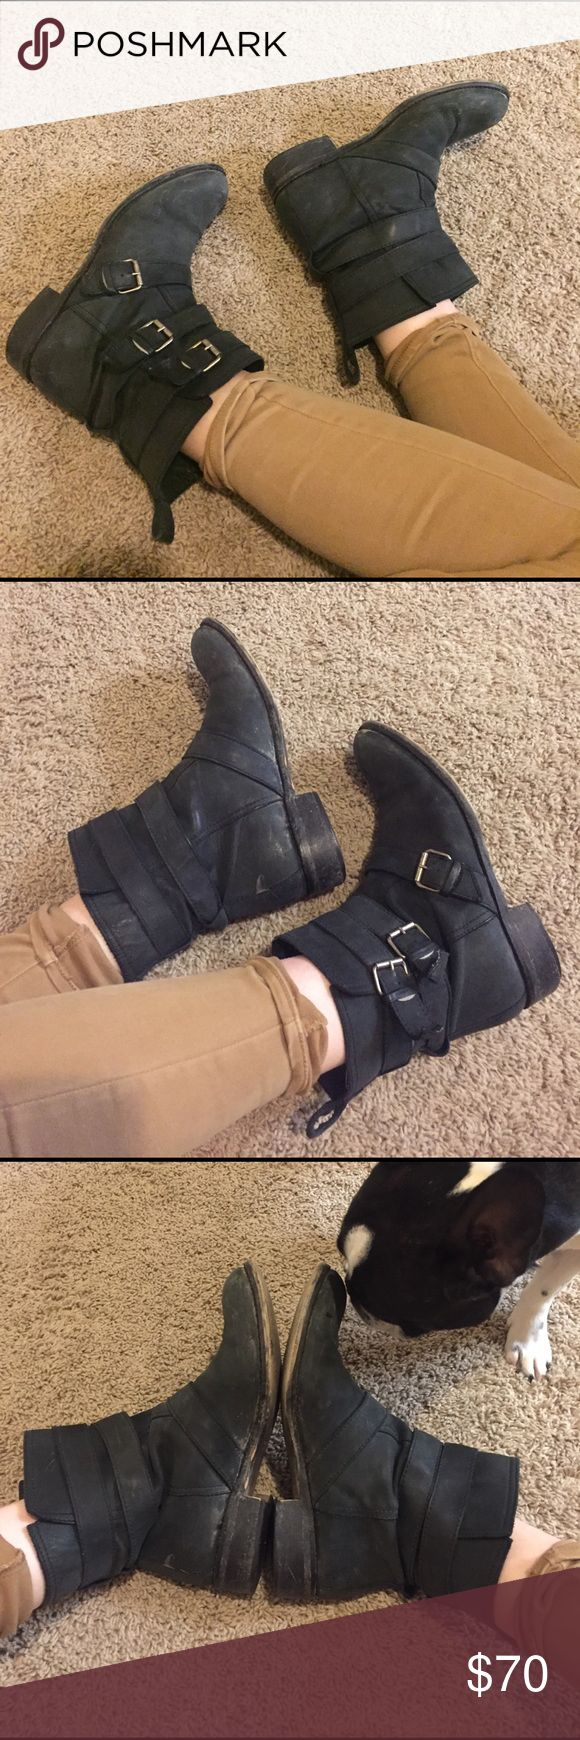 Madewell Black Leather Motorcycle Boots These are my babies! True to size and made in Italy, sold by Madewell. I think these are maybe 7 or 8 years old. They are broken in and SO comfortable. Yes, they have mud on them but I think it gives them character (it can be cleaned off). The bottoms are worn in, and there is some wear to the heel but absolutely no replacing it necessary. I don't wear them enough, but I'm not totally willing to part with them yet! Comment for questions! Madewell Shoes…